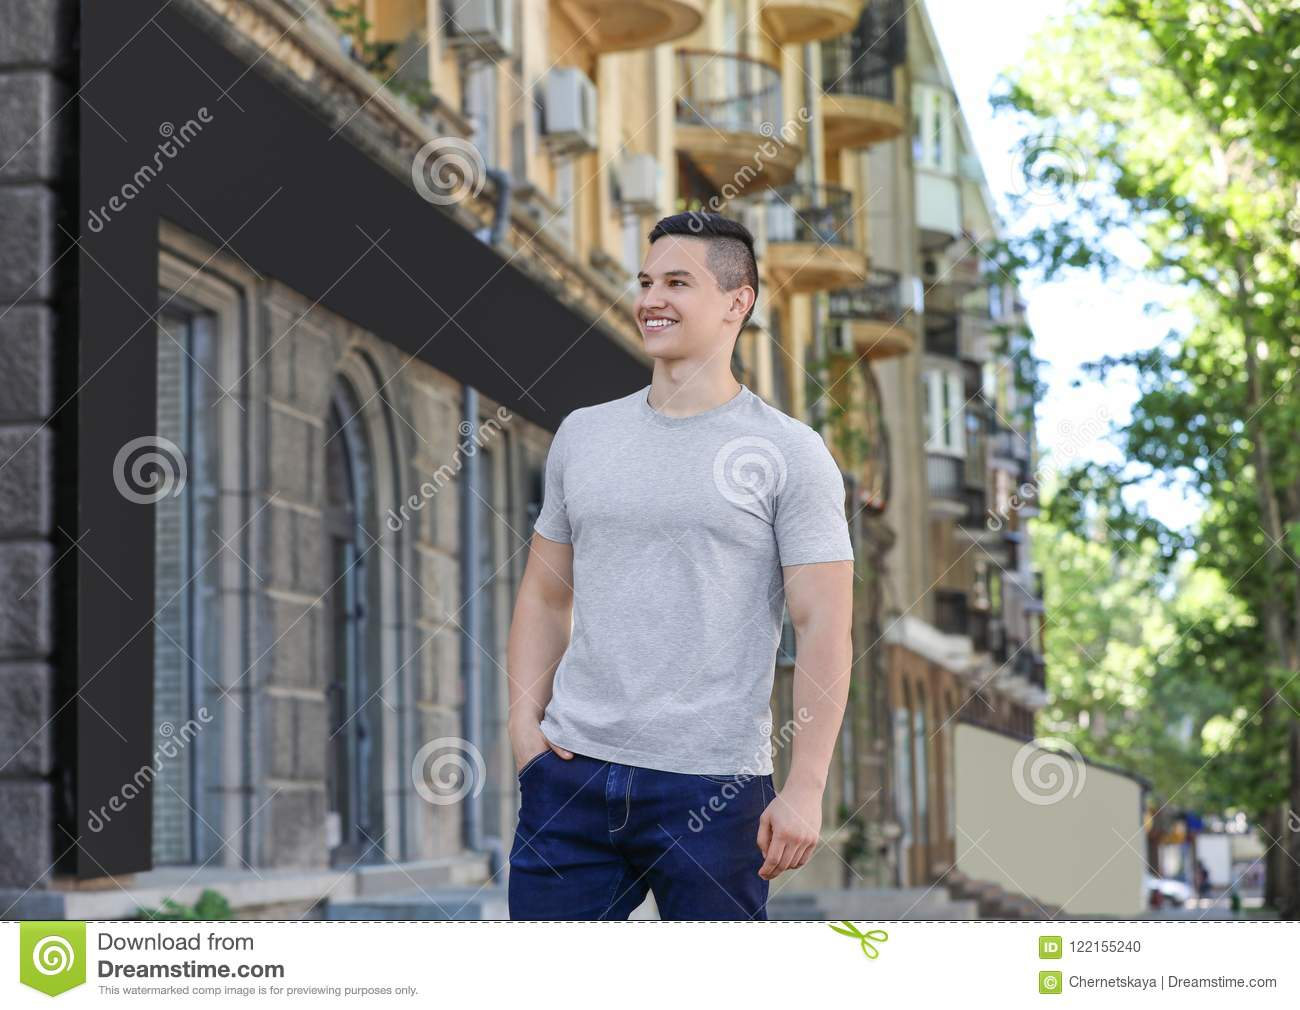 Young man in grey t-shirt outdoors